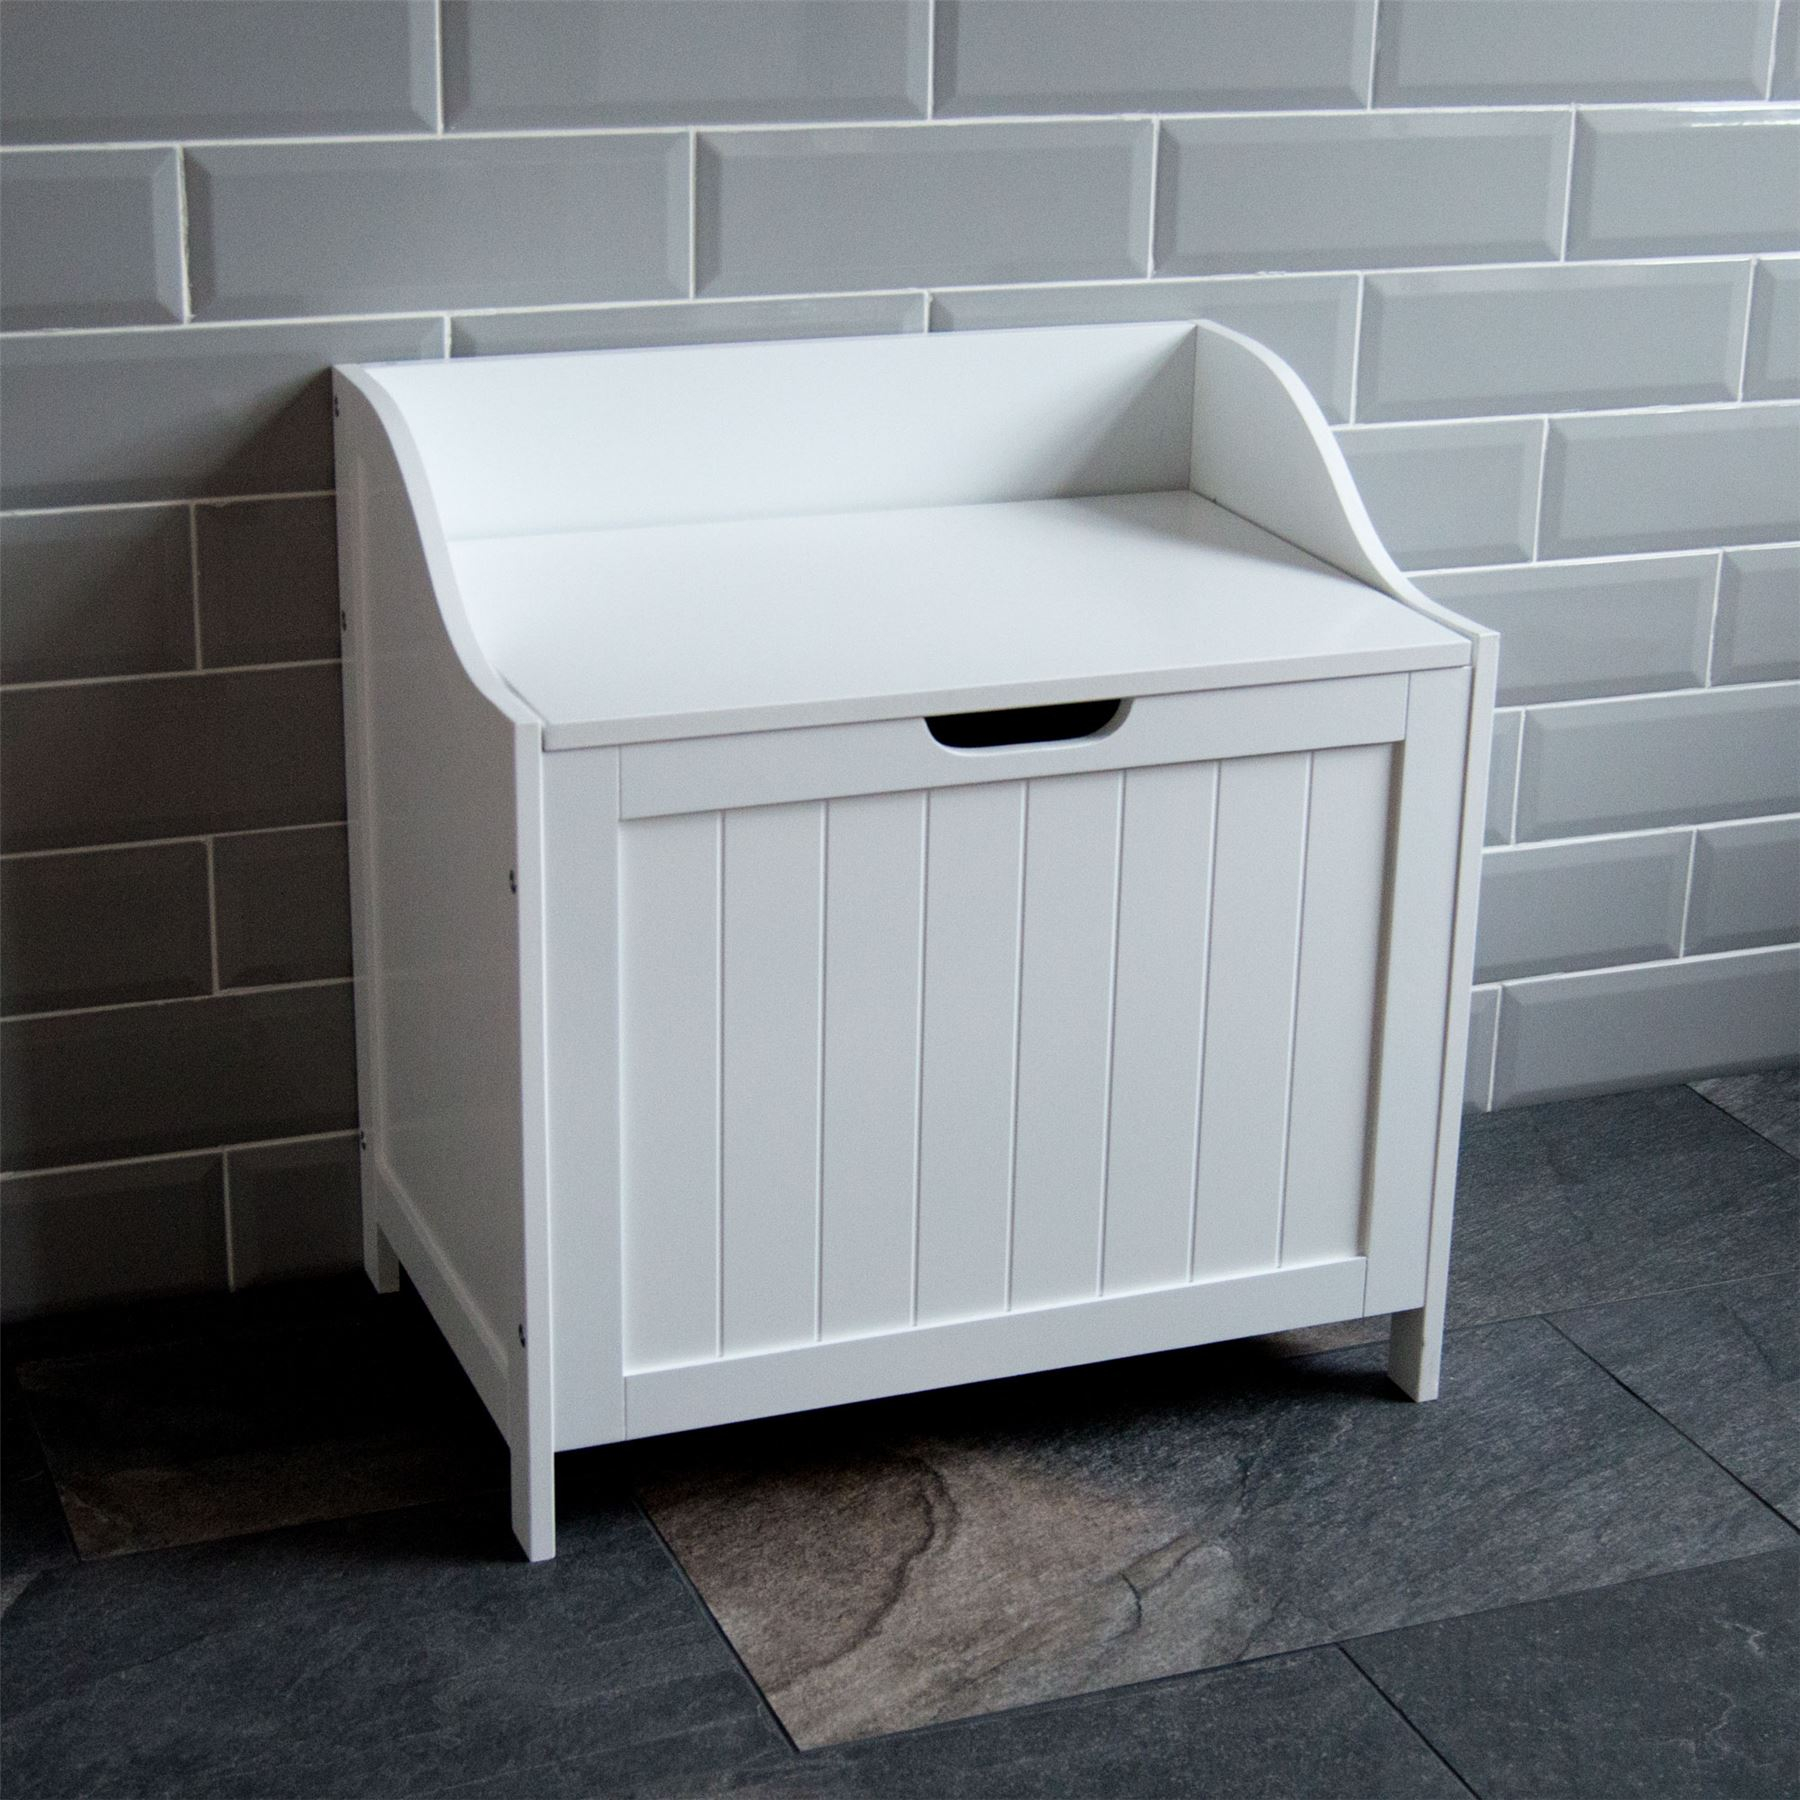 Details About Priano Bathroom Laundry Cabinet Storage Bin Chest Basket Box Furniture White in sizing 1800 X 1800